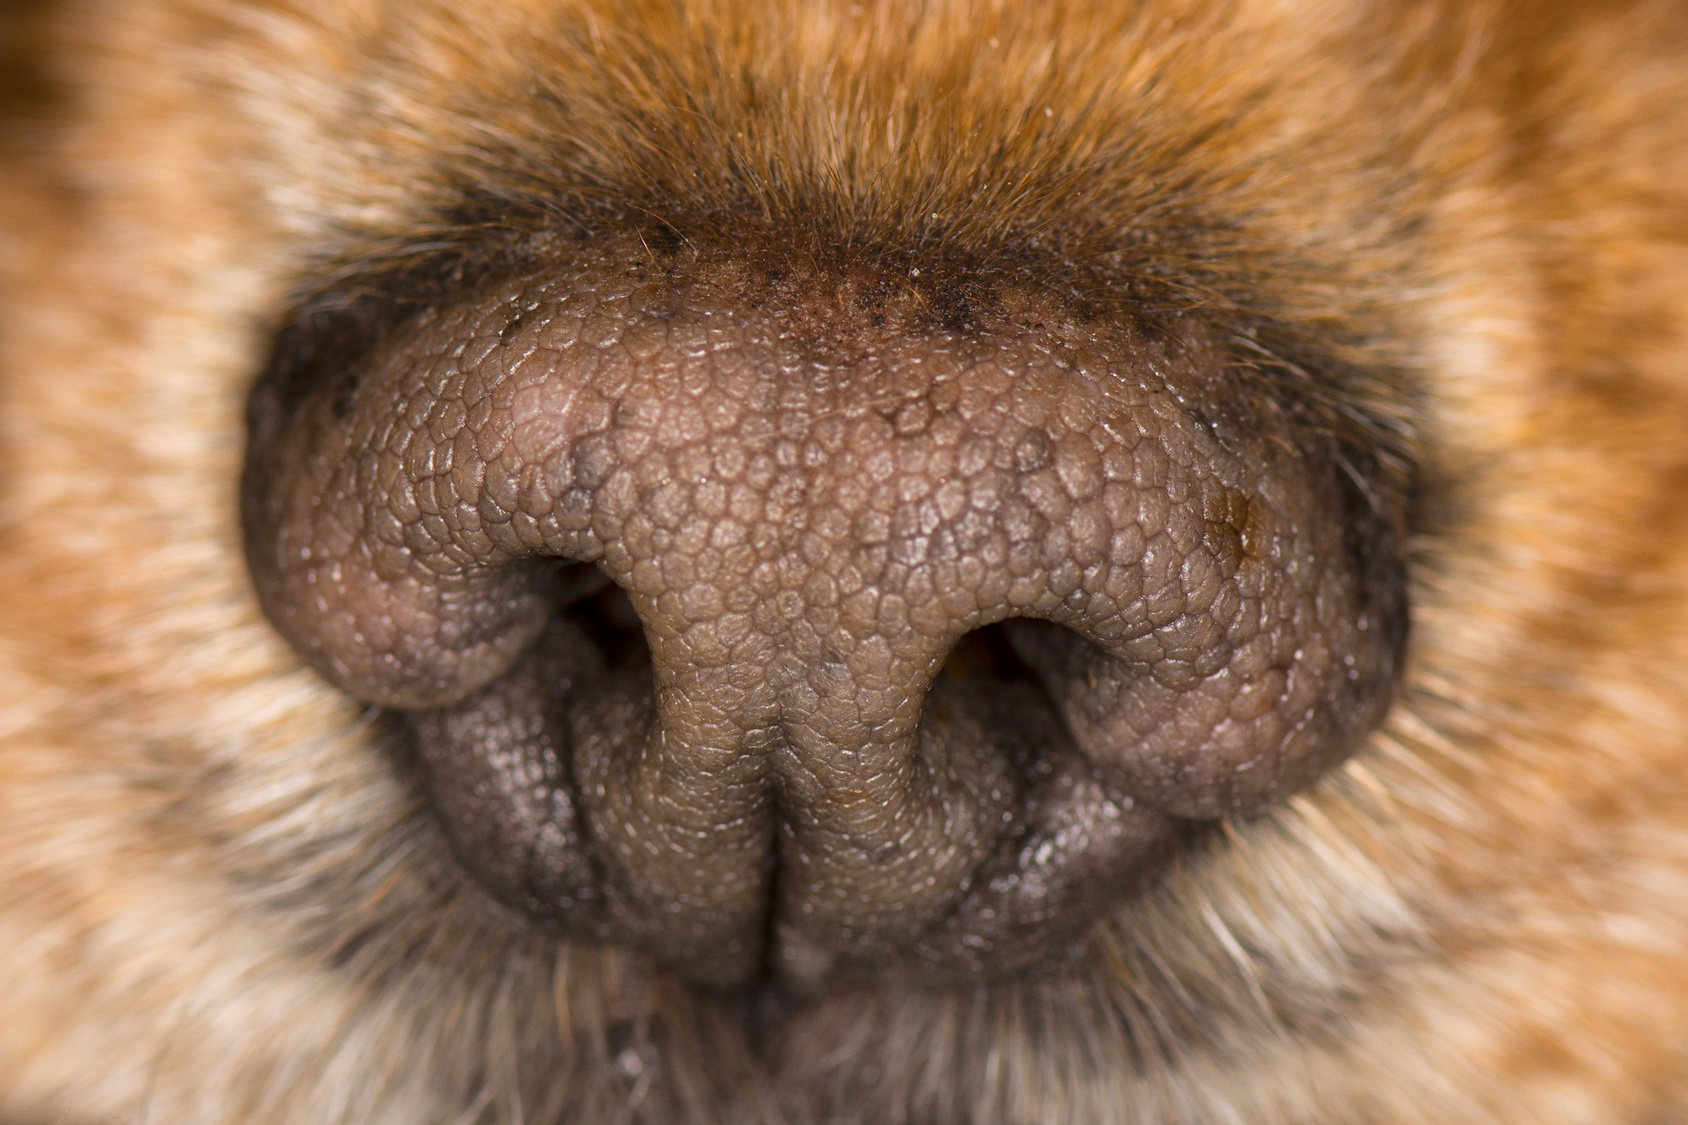 dog nose macro close up detail